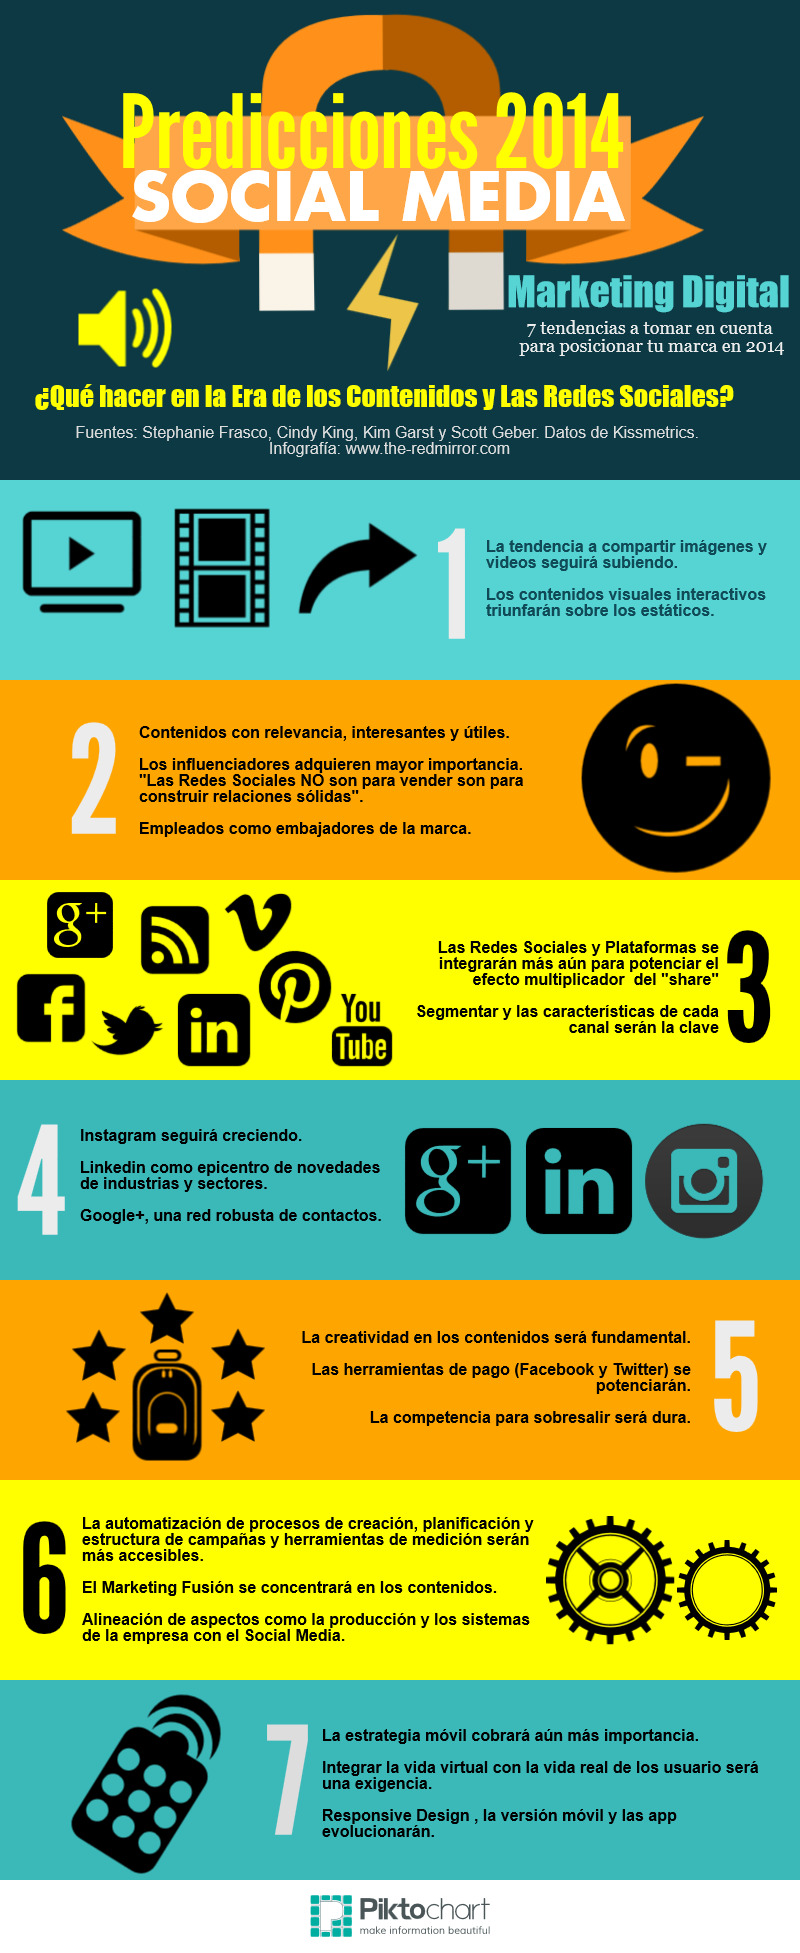 Marketing digital y Social Media 2014